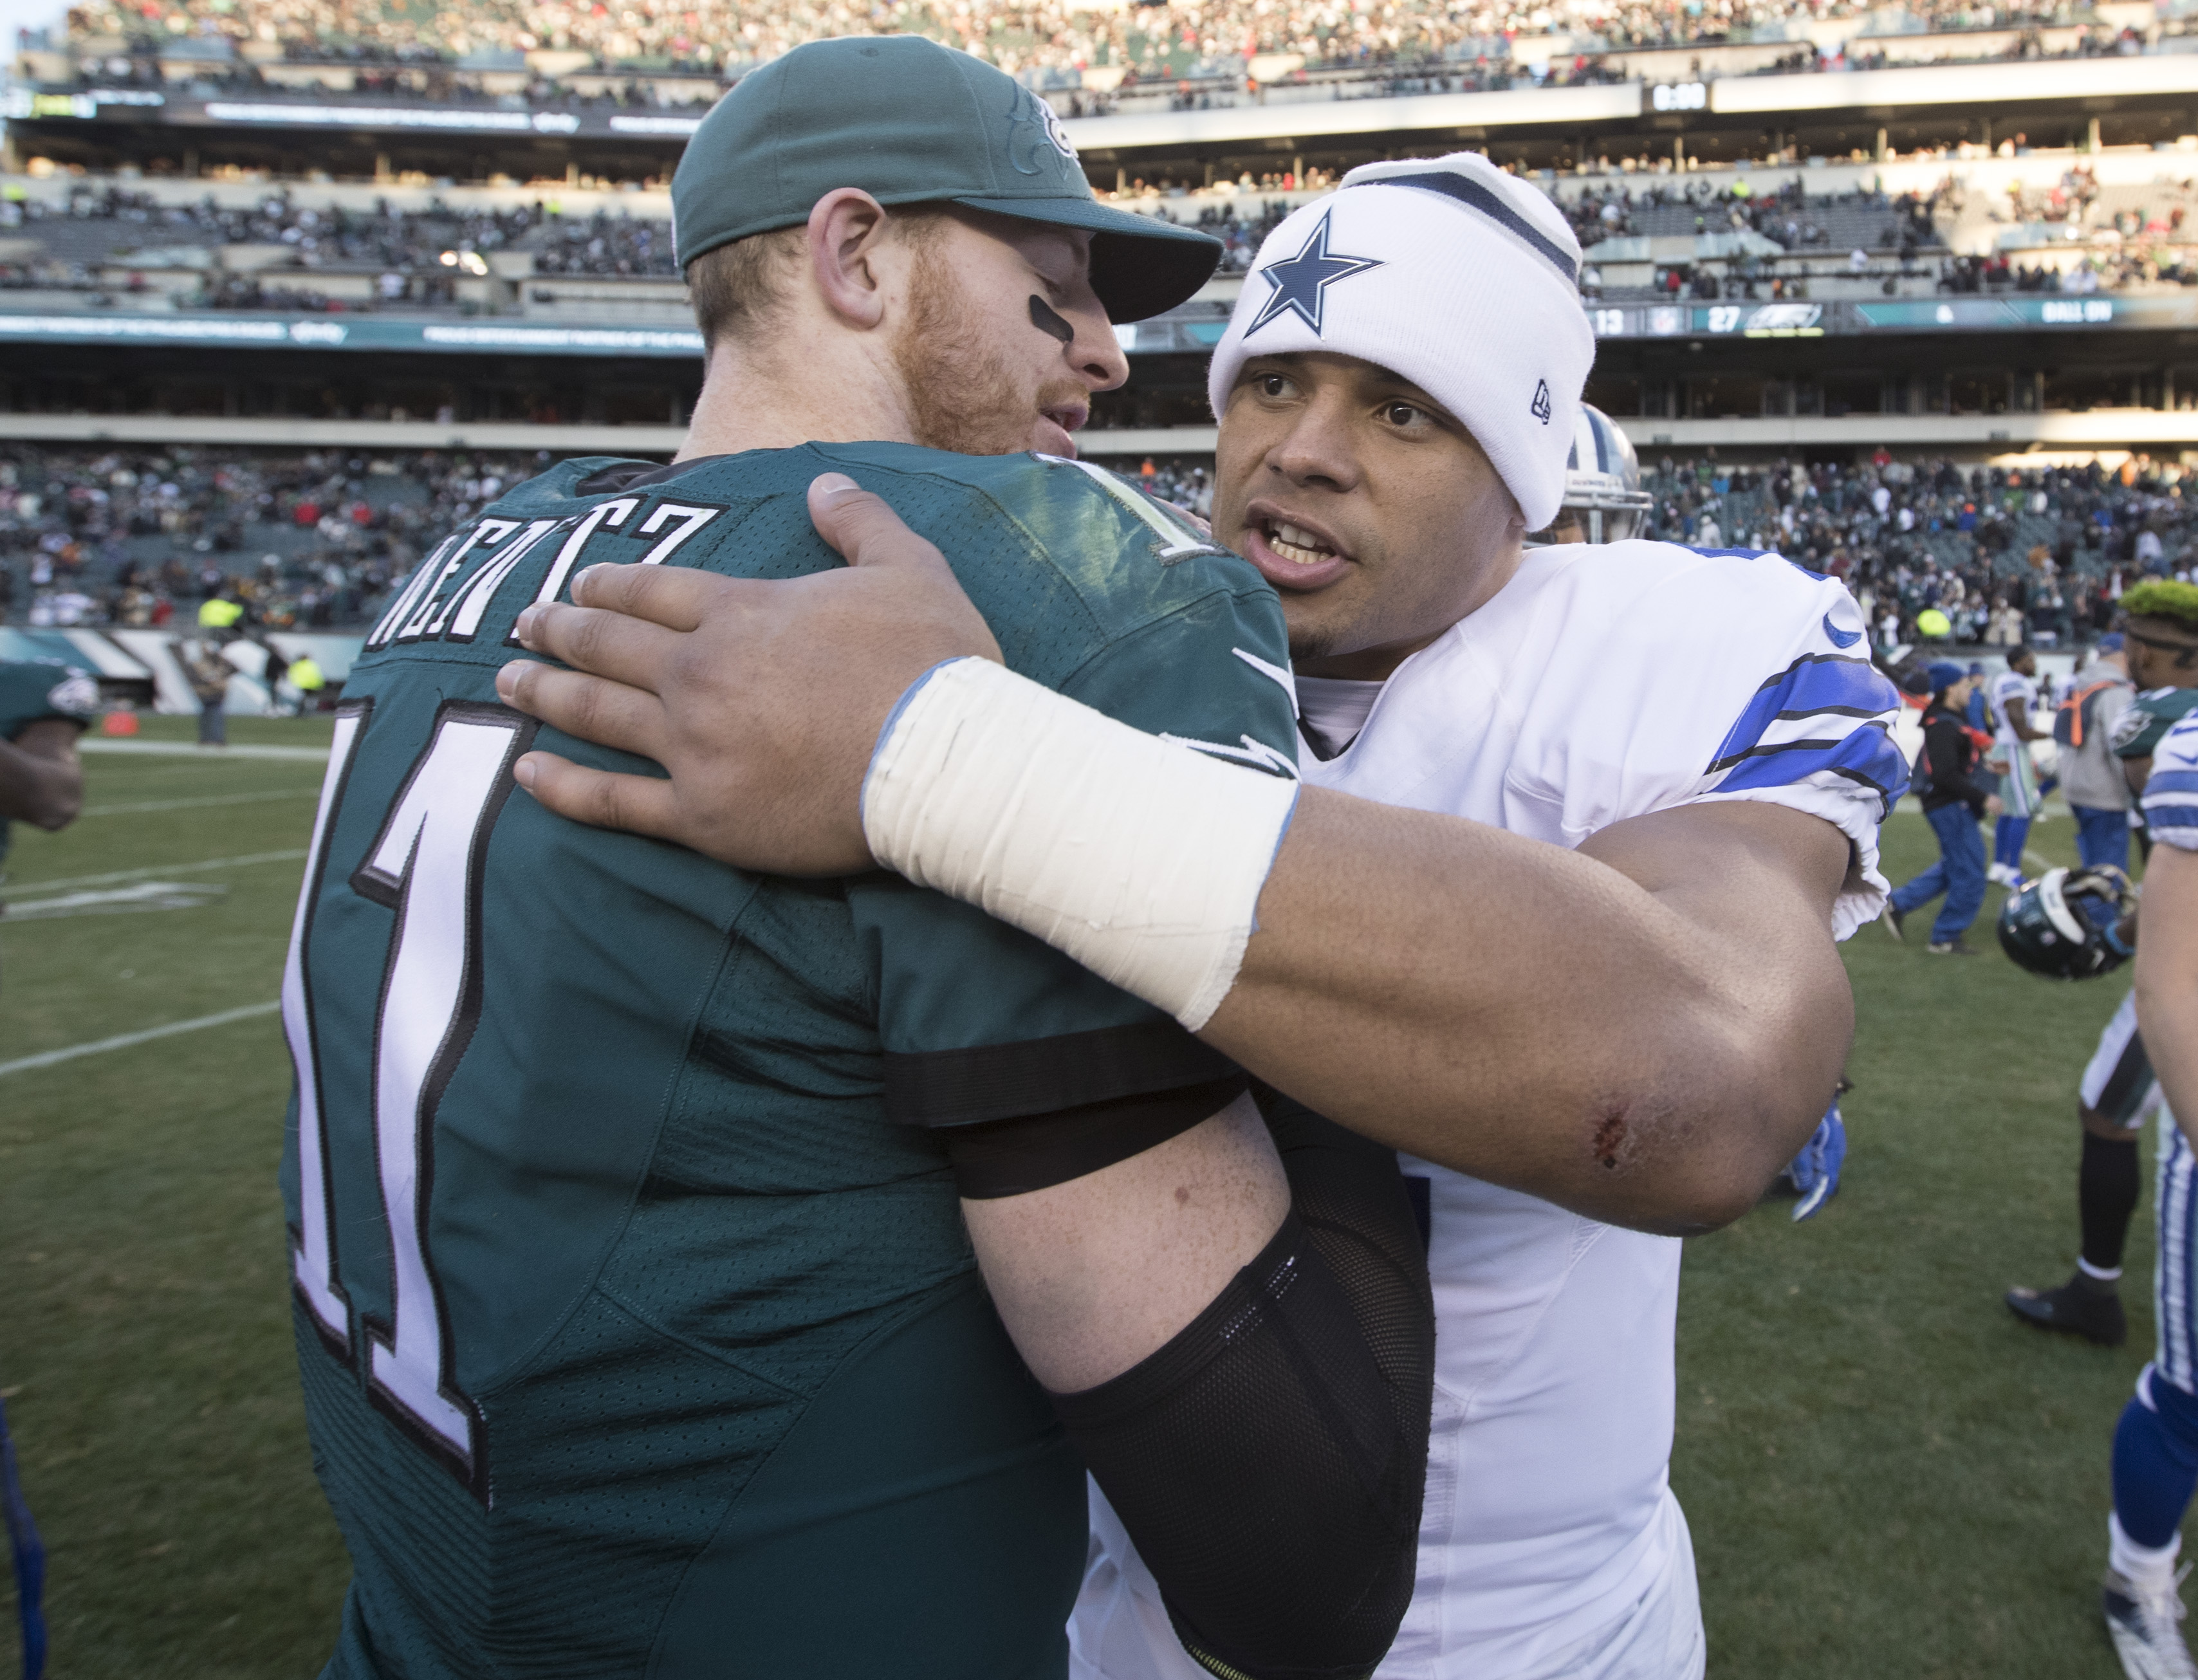 Quarterback Carson Wentz of the Philadelphia Eagles hugs Dak Prescott of the Dallas Cowboys after the game at Lincoln Financial Field on January 1, 2017 in Philadelphia, Pennsylvania. The Eagles defeated the Cowboys 27-13.